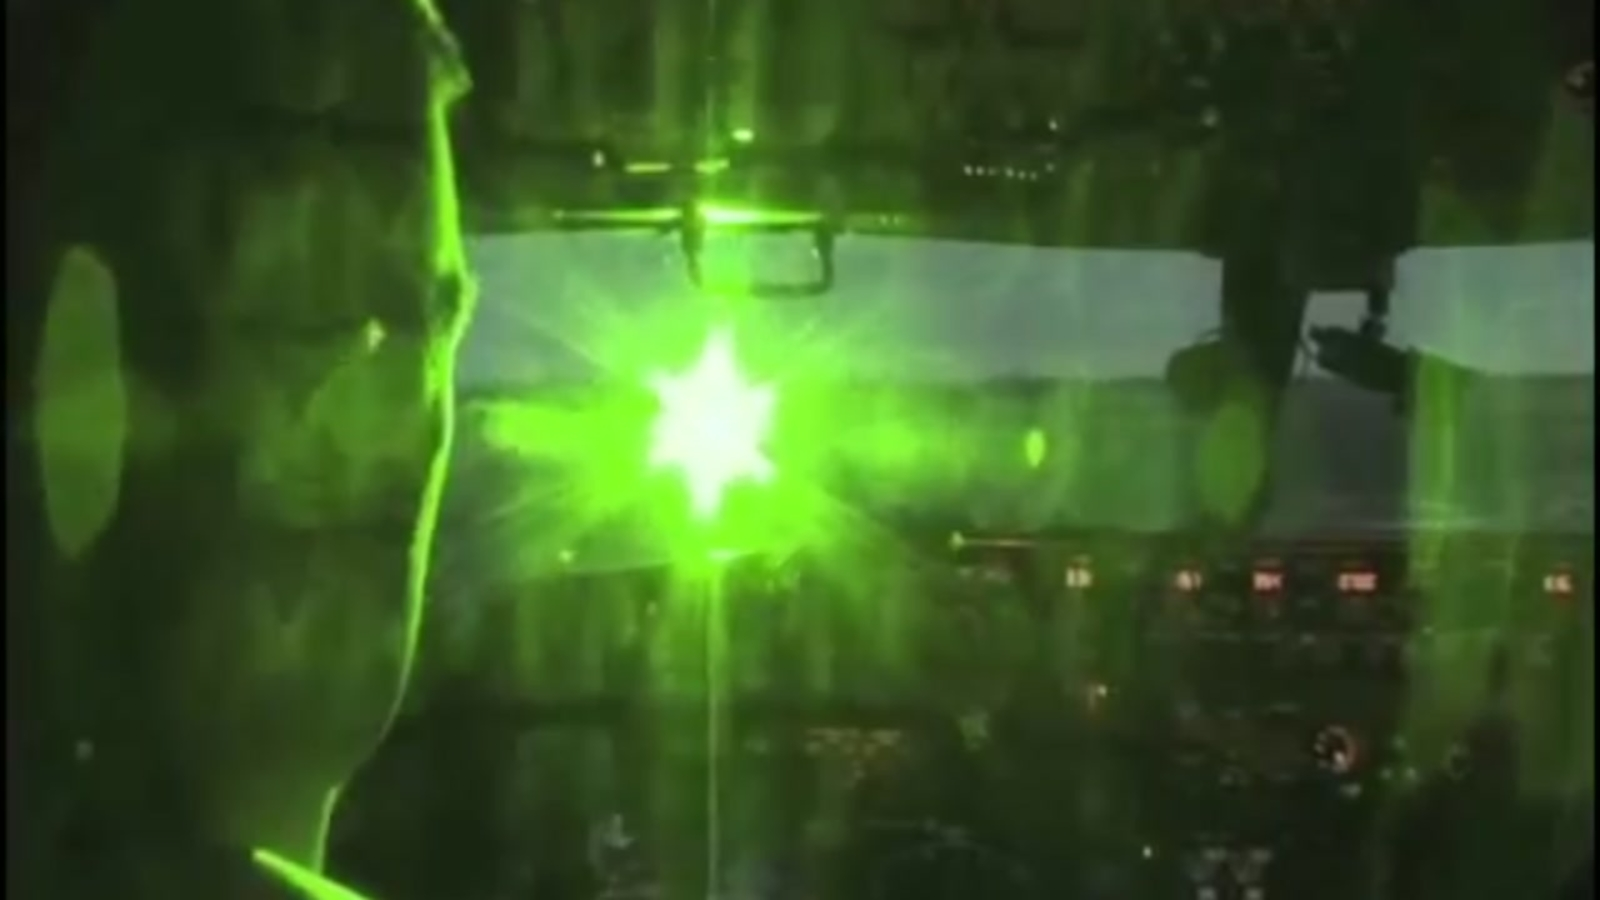 VIDEO: The danger of laser activity around airplanes